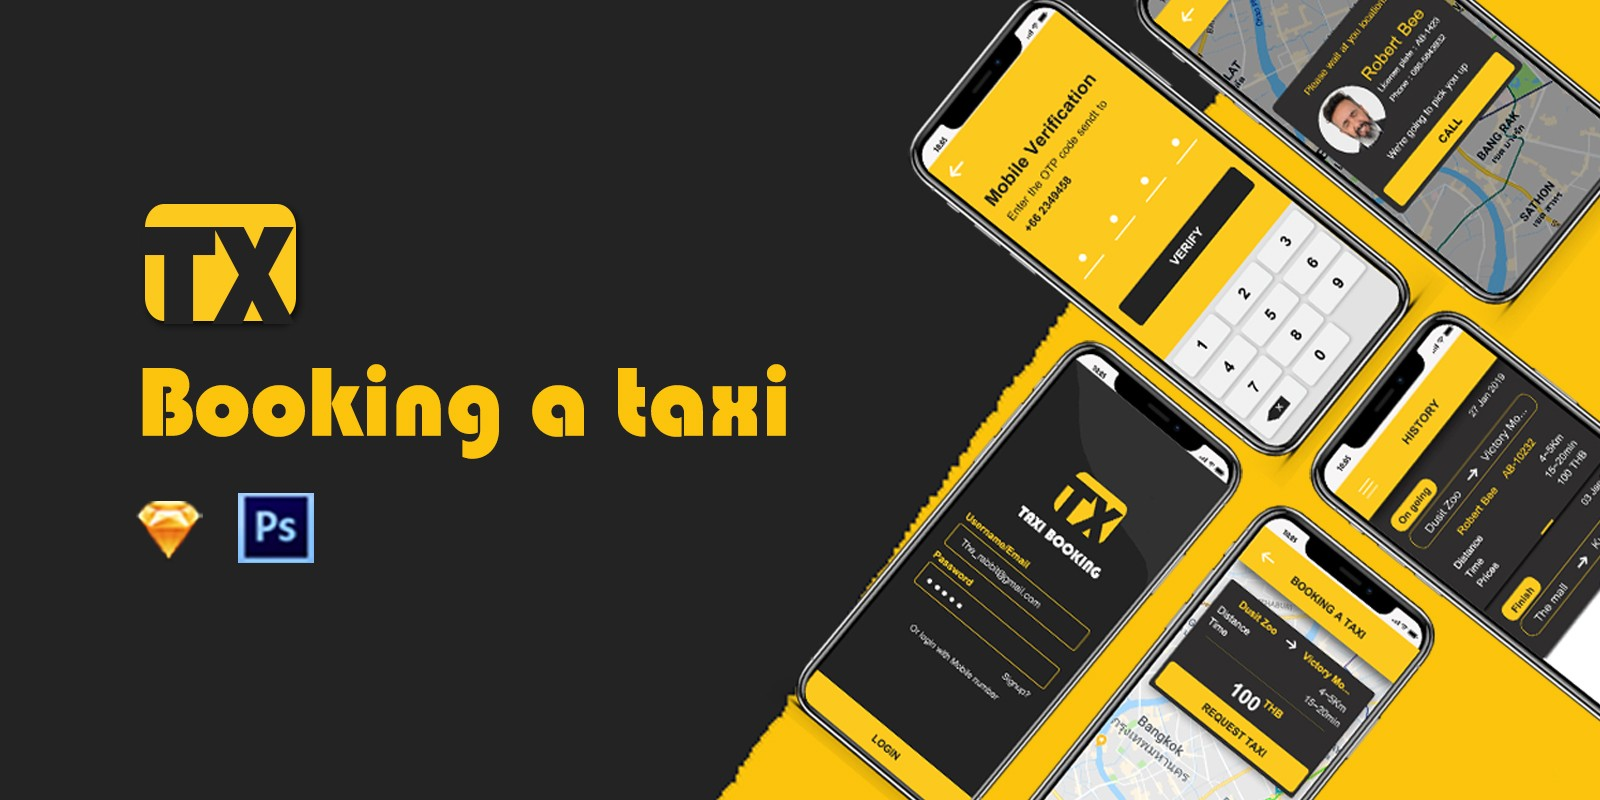 TX - Taxi Booking UI Kit PSD